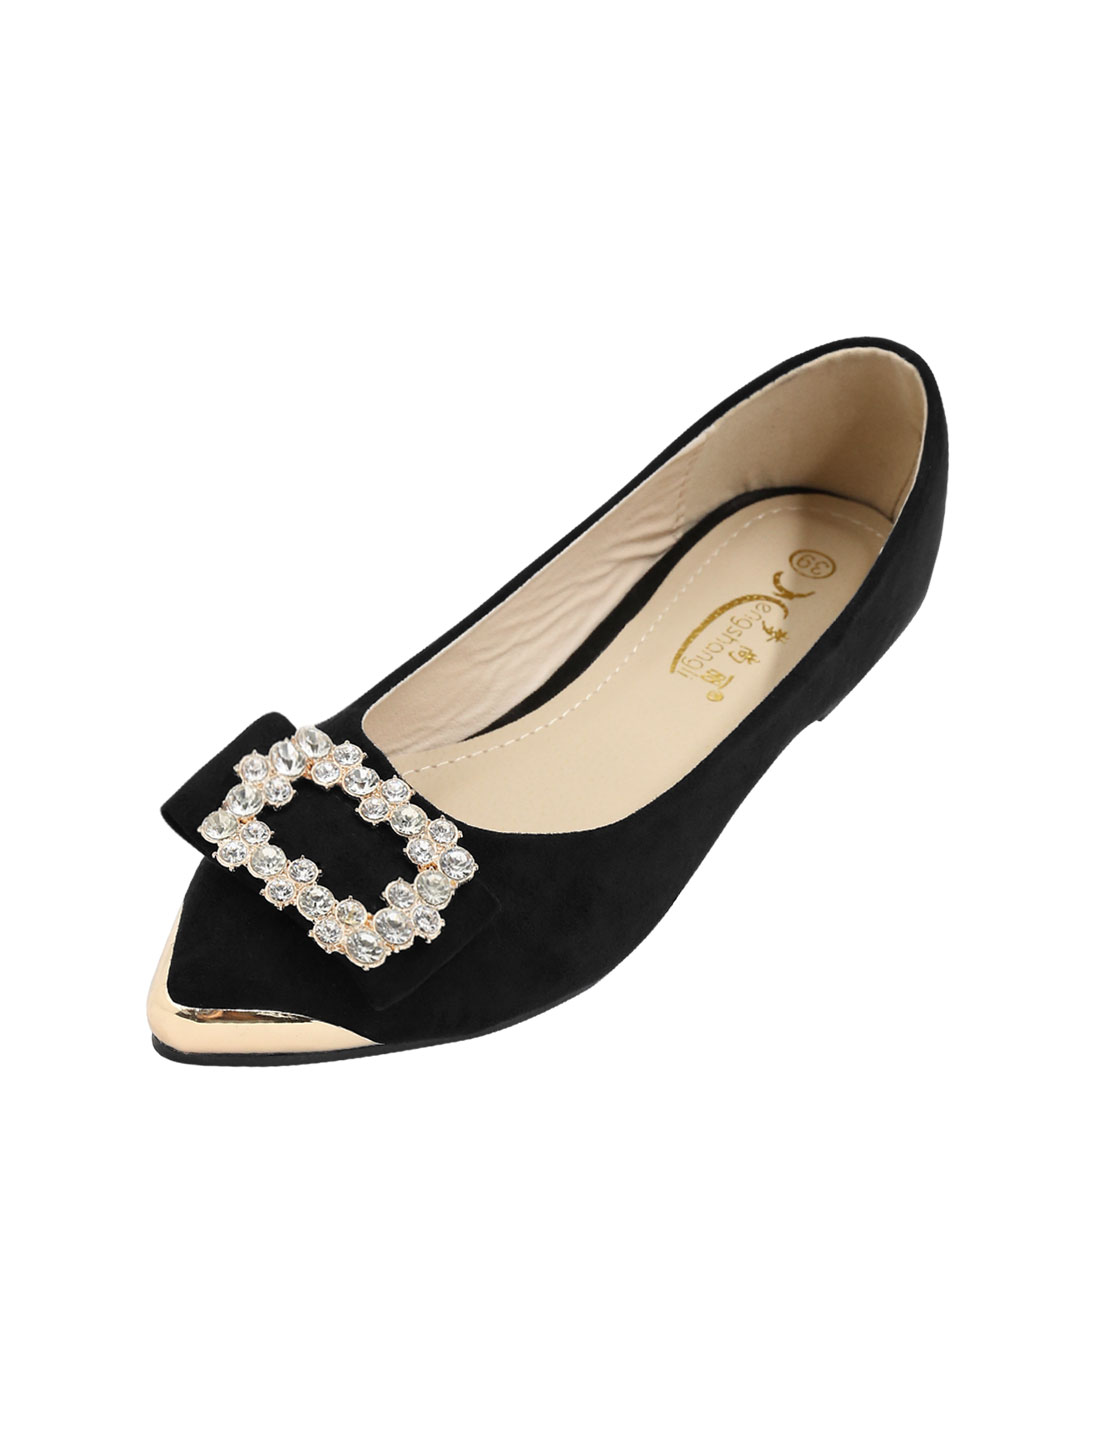 Ladies Pointed Toe Rinestone Embellished Casual Flat Pumps Black US 8.5